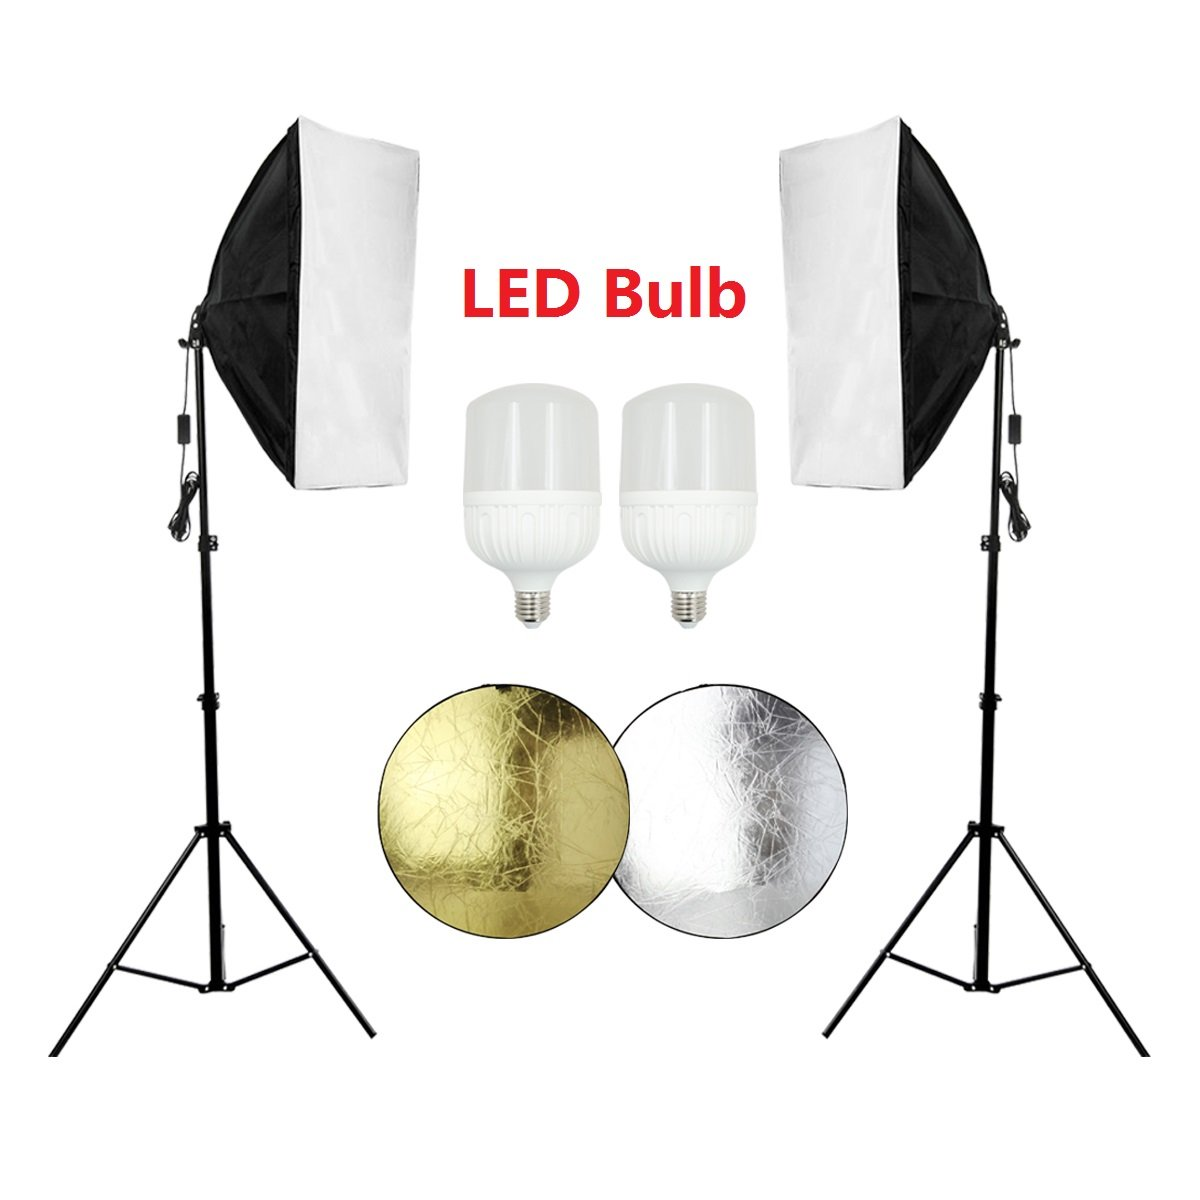 Photography Continuous Softbox Lighting Kit 20 x 28 inch Soft Box with 2 pcs LED Softbox Light Bulb for Professional Photo Studio Equipment Video Portrait Lighting with 2 in 1 Reflector  by Grandekor (Image #1)